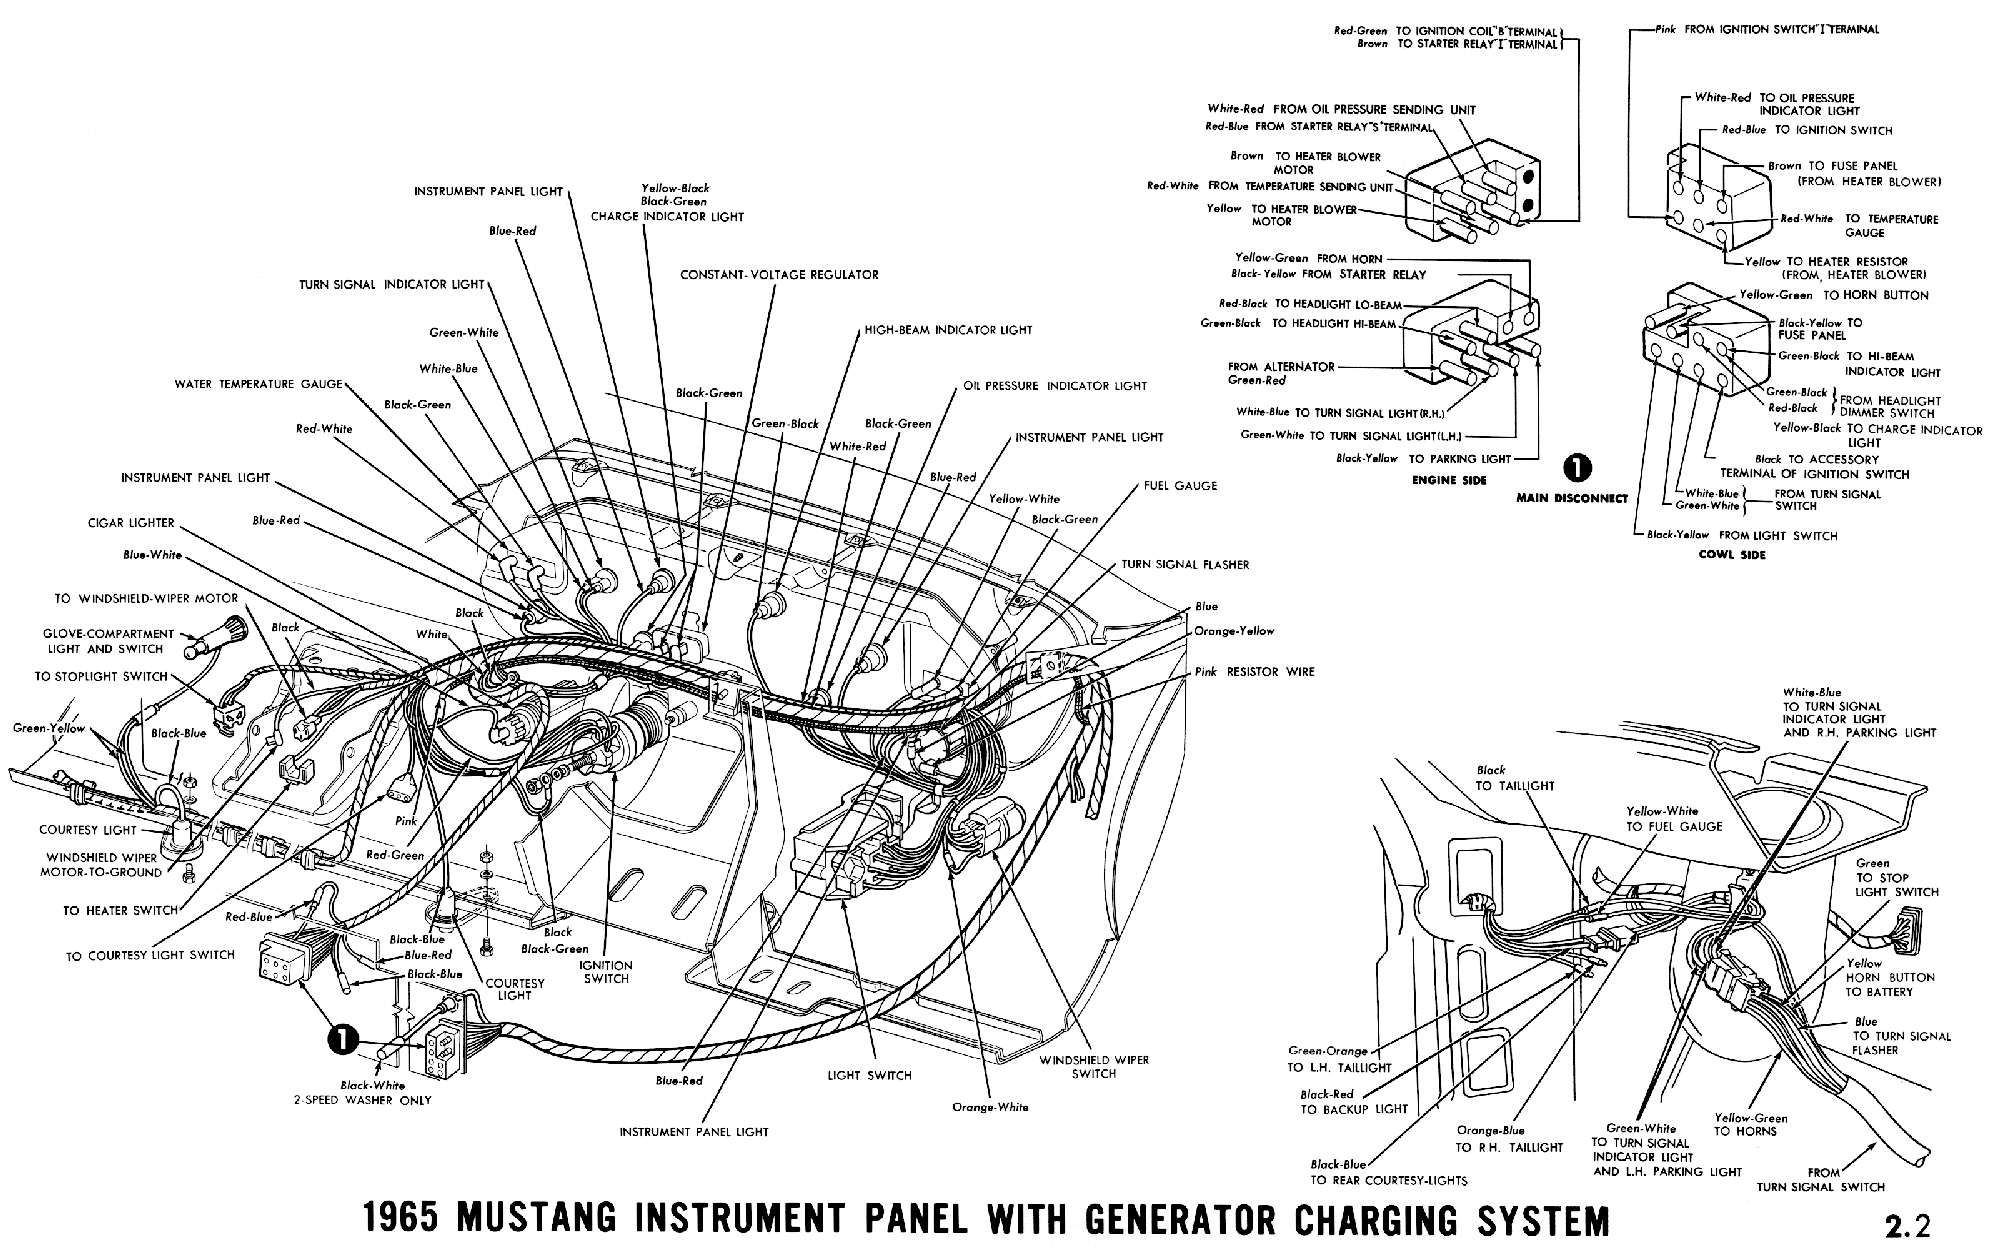 1965 mustang instrument panel alternator charging system 1965 mustang wiring diagrams average joe restoration